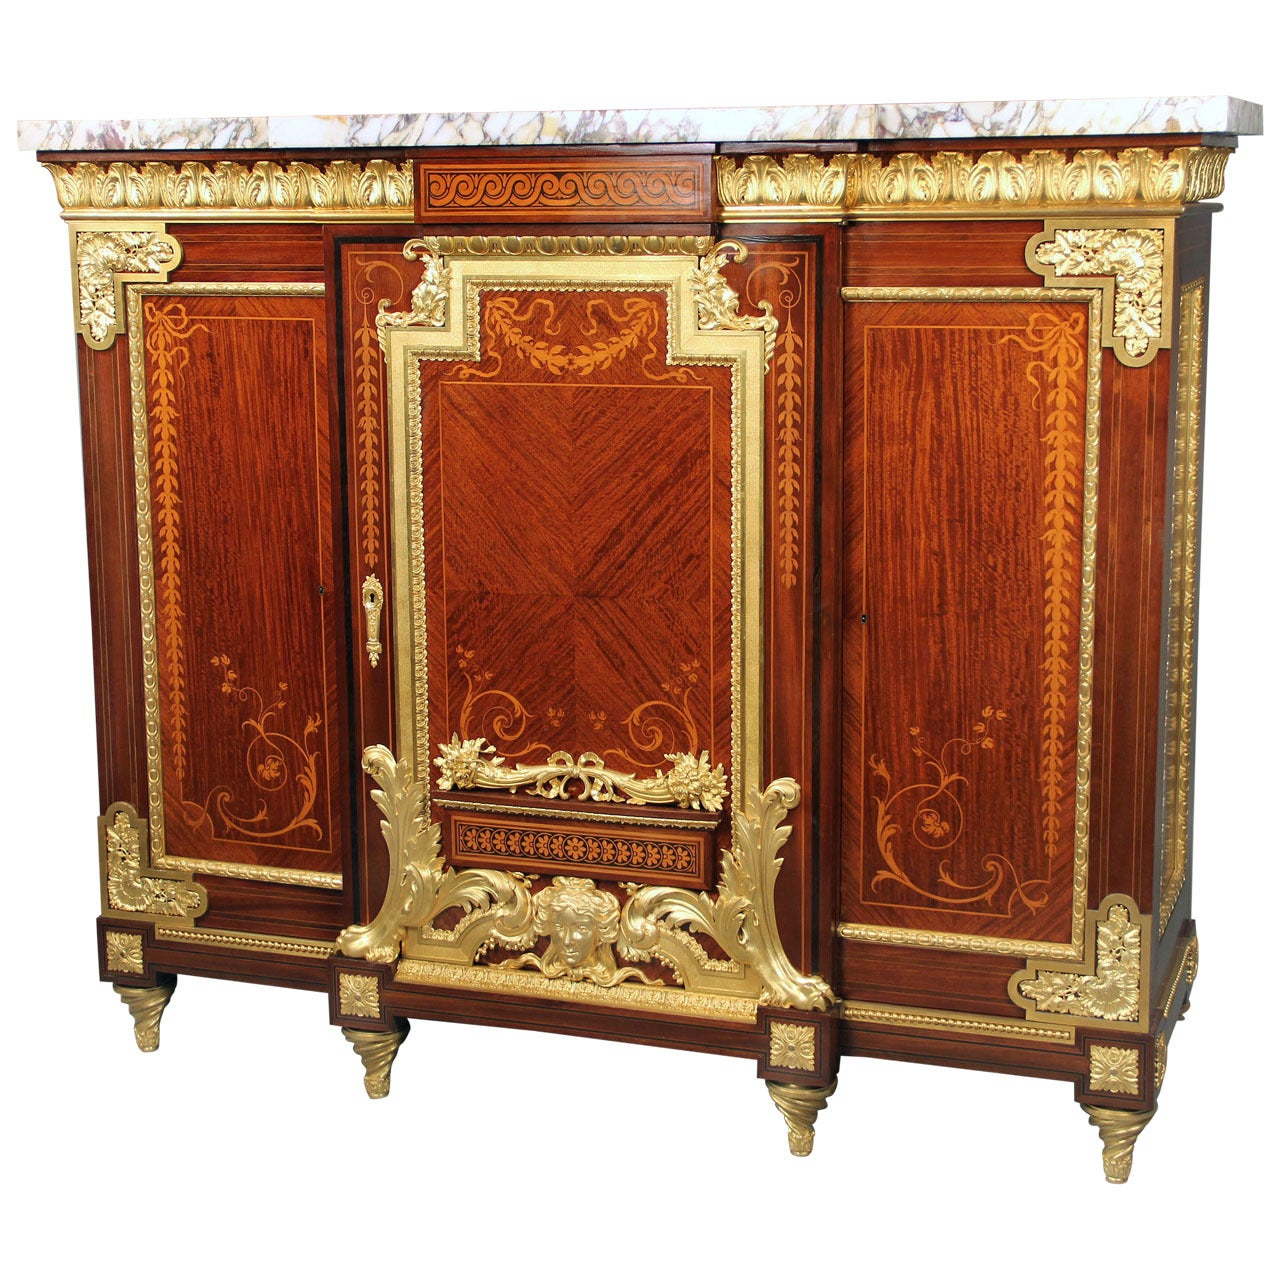 Rare Late 19th Century Gilt Bronze-Mounted Marquetry Cabinet